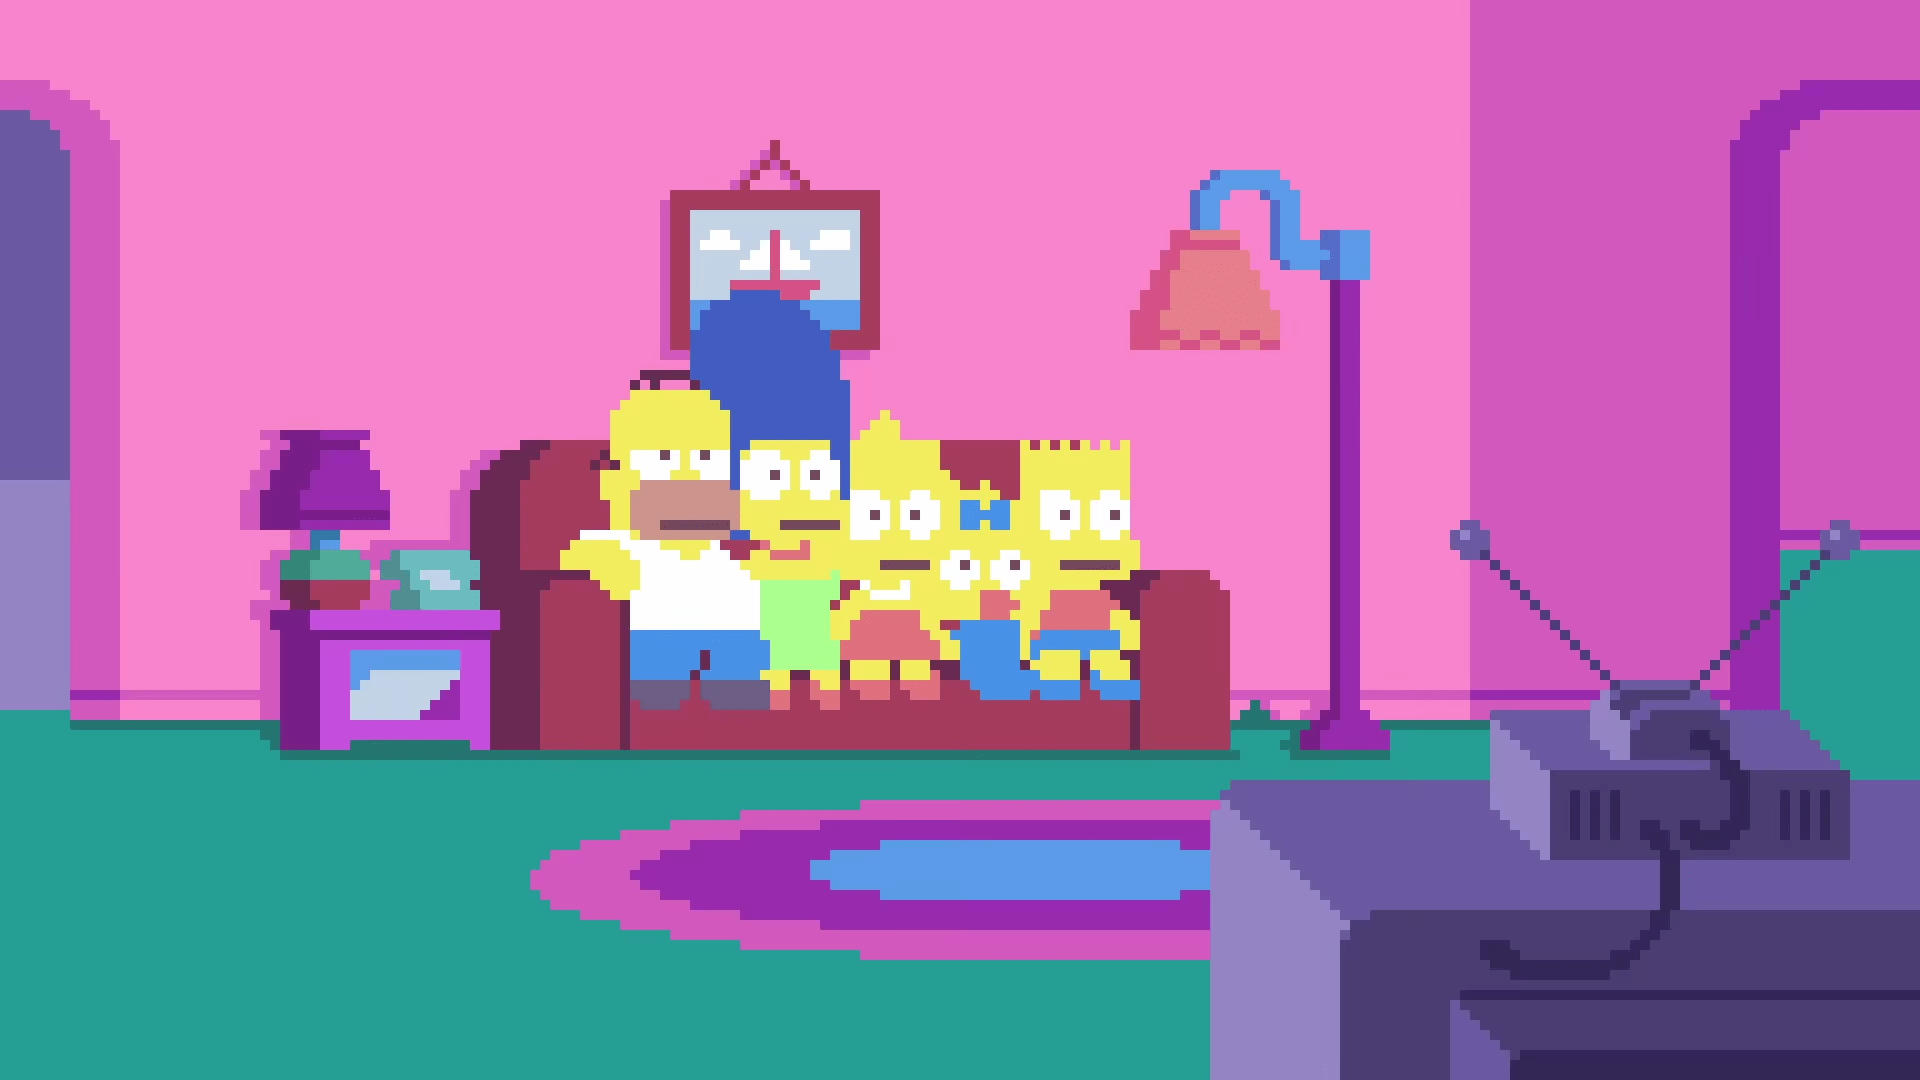 Big Bang Couch Gag Simpsons Pixel Couch Gag Wikisimpsons The Simpsons Wiki